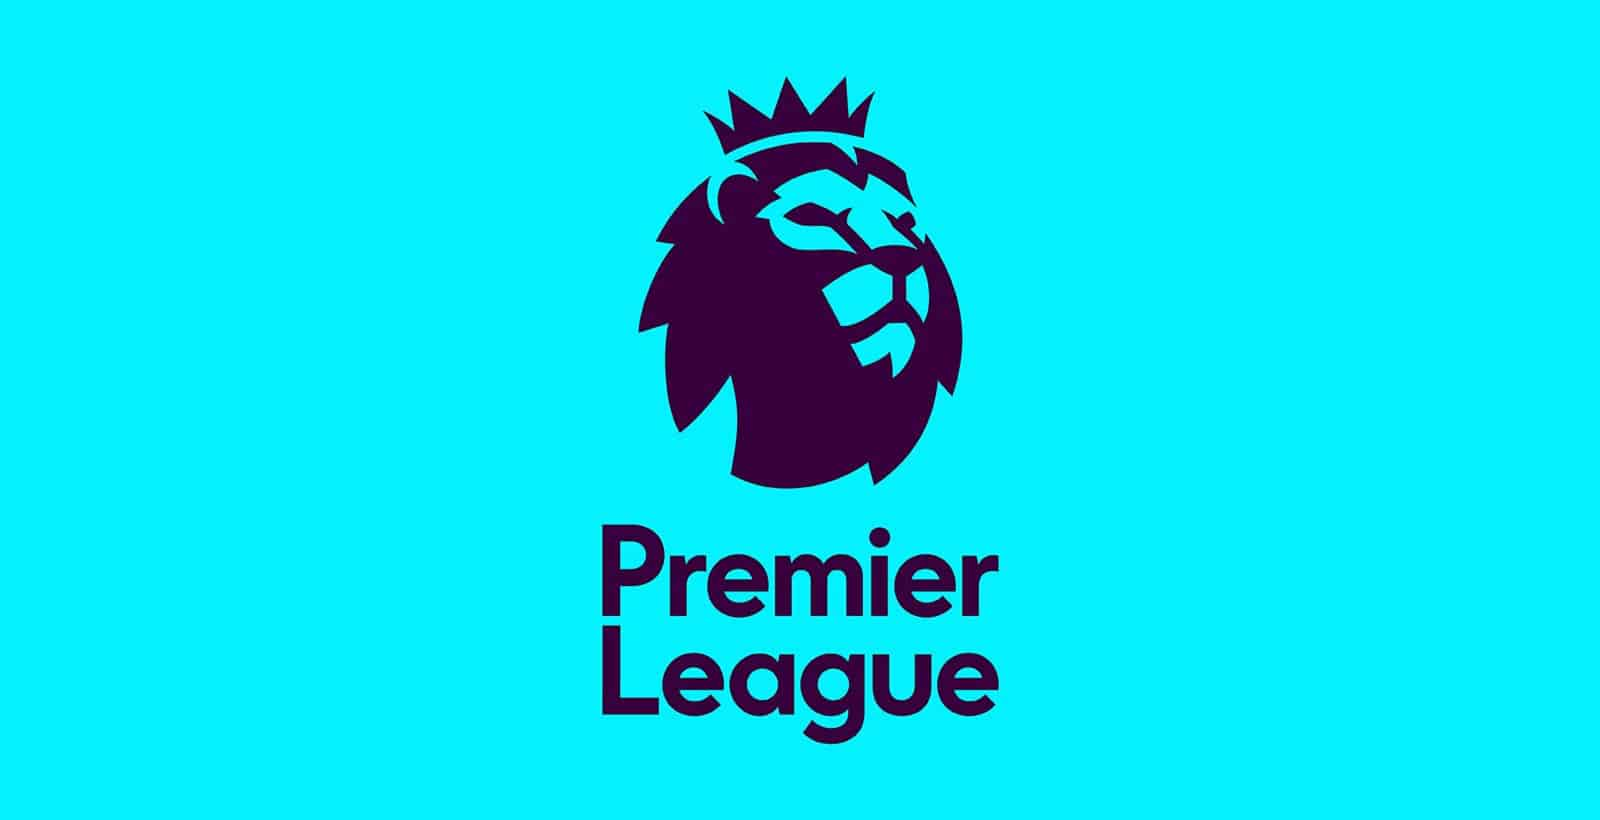 All of the completed Premier League transfers for 2018-19